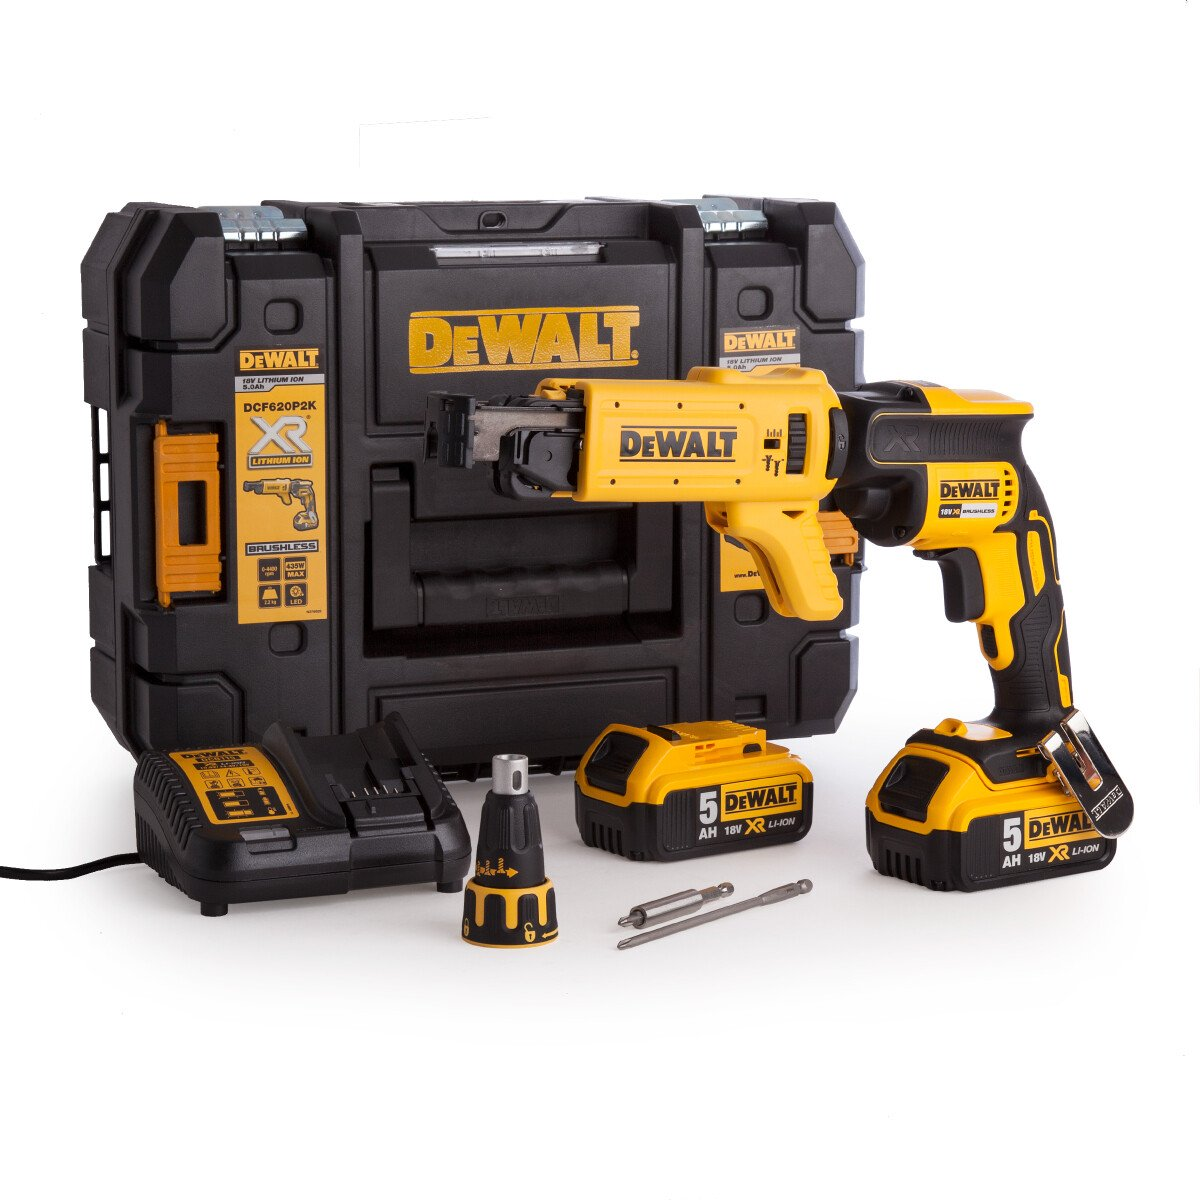 Dewalt DCF620P2K-GB Collated Drywall Screwdriver 18V Cordless Brushless with 2 x 5.0Ah Batteries in TSTAK Kit Box